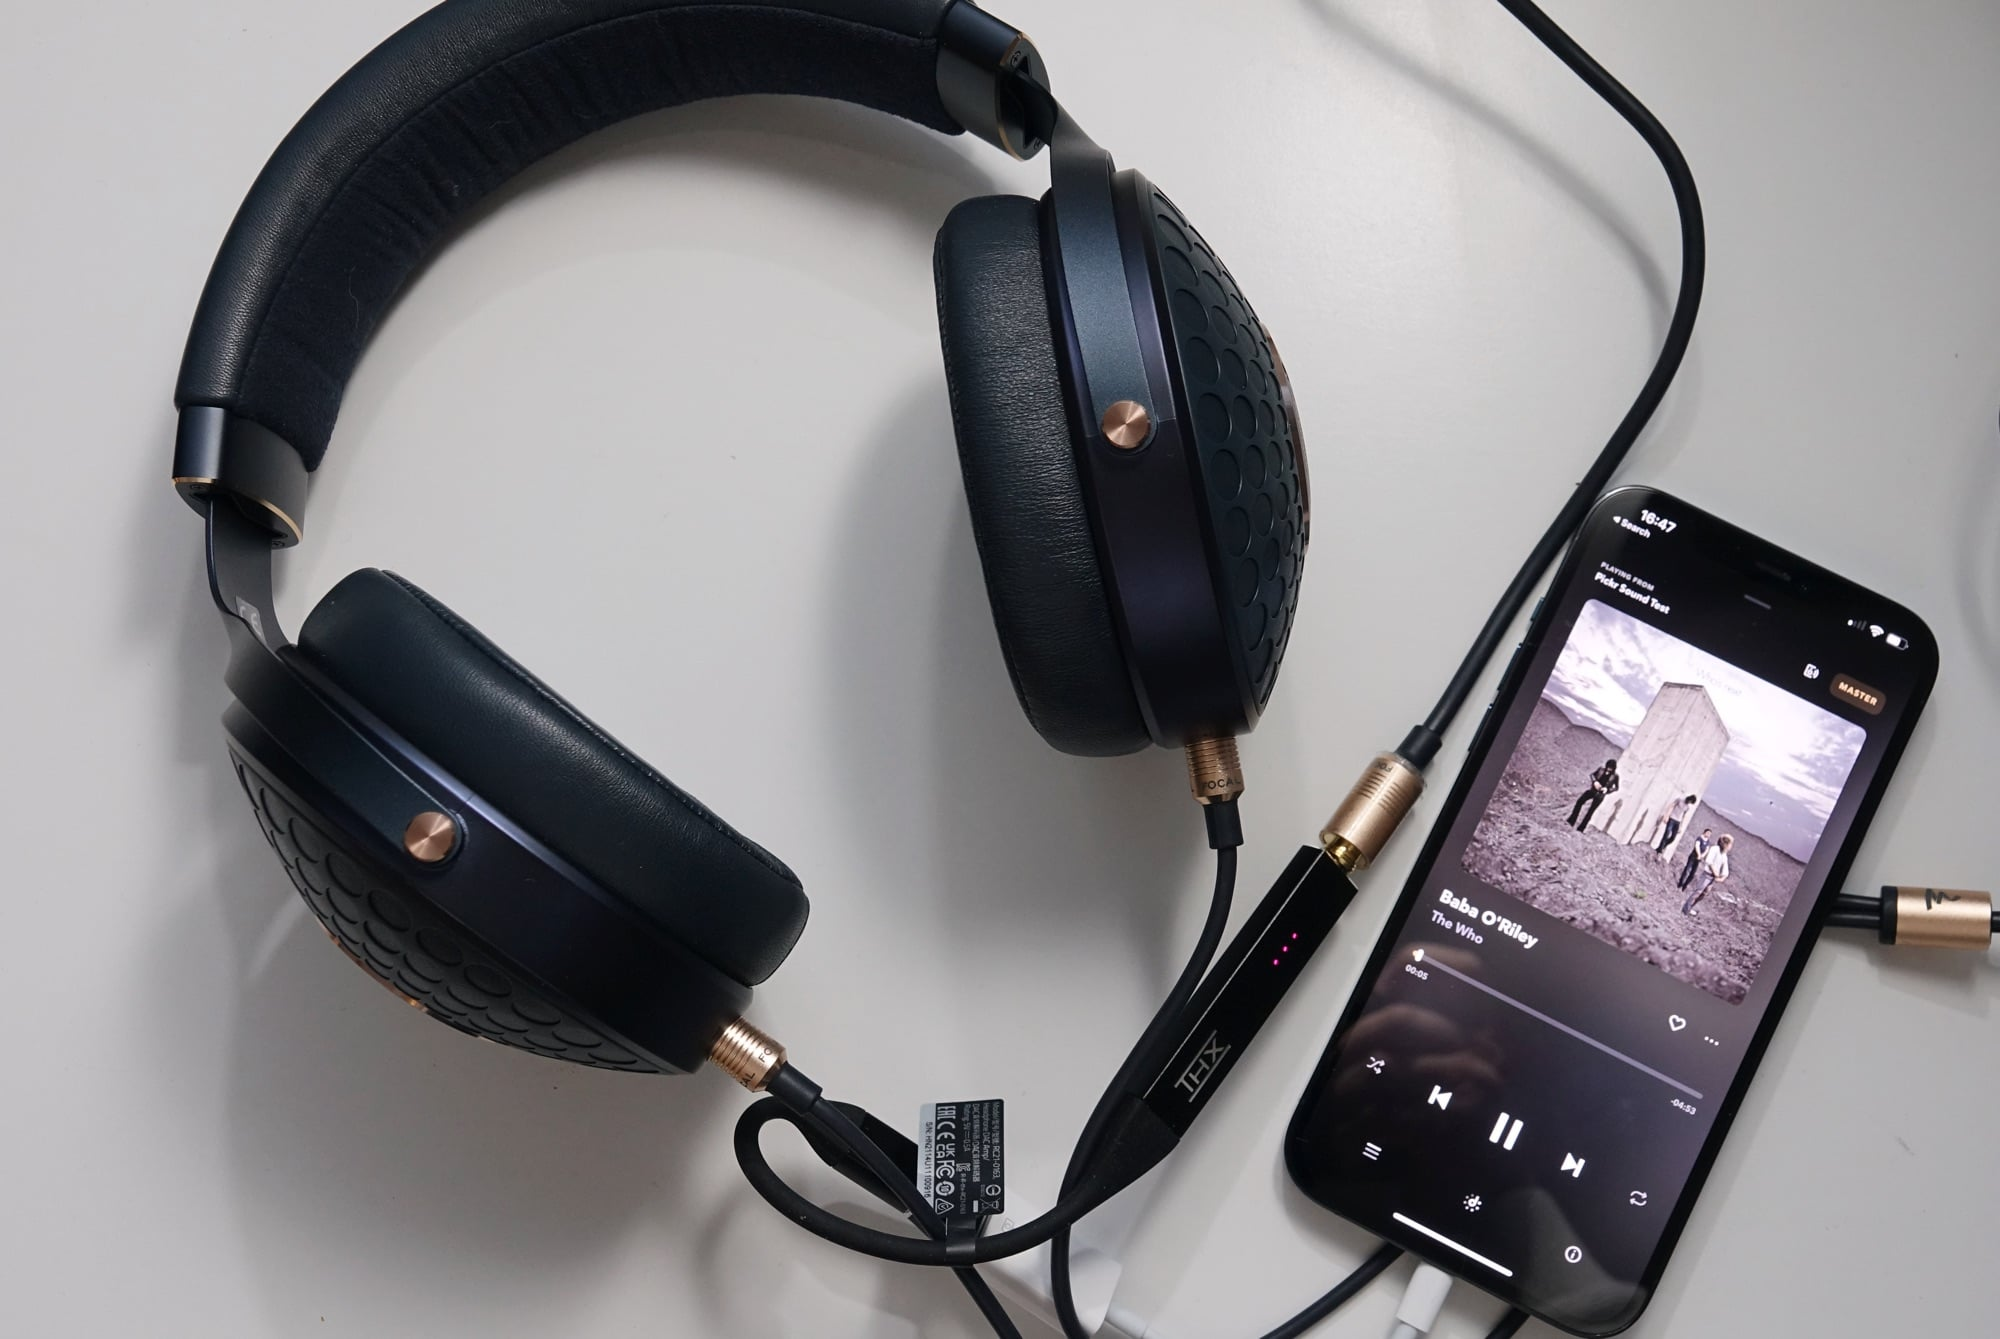 Focal Celestee headphones plugged into the THX Onyx USB DAC and into an iPhone 12 Pro Max